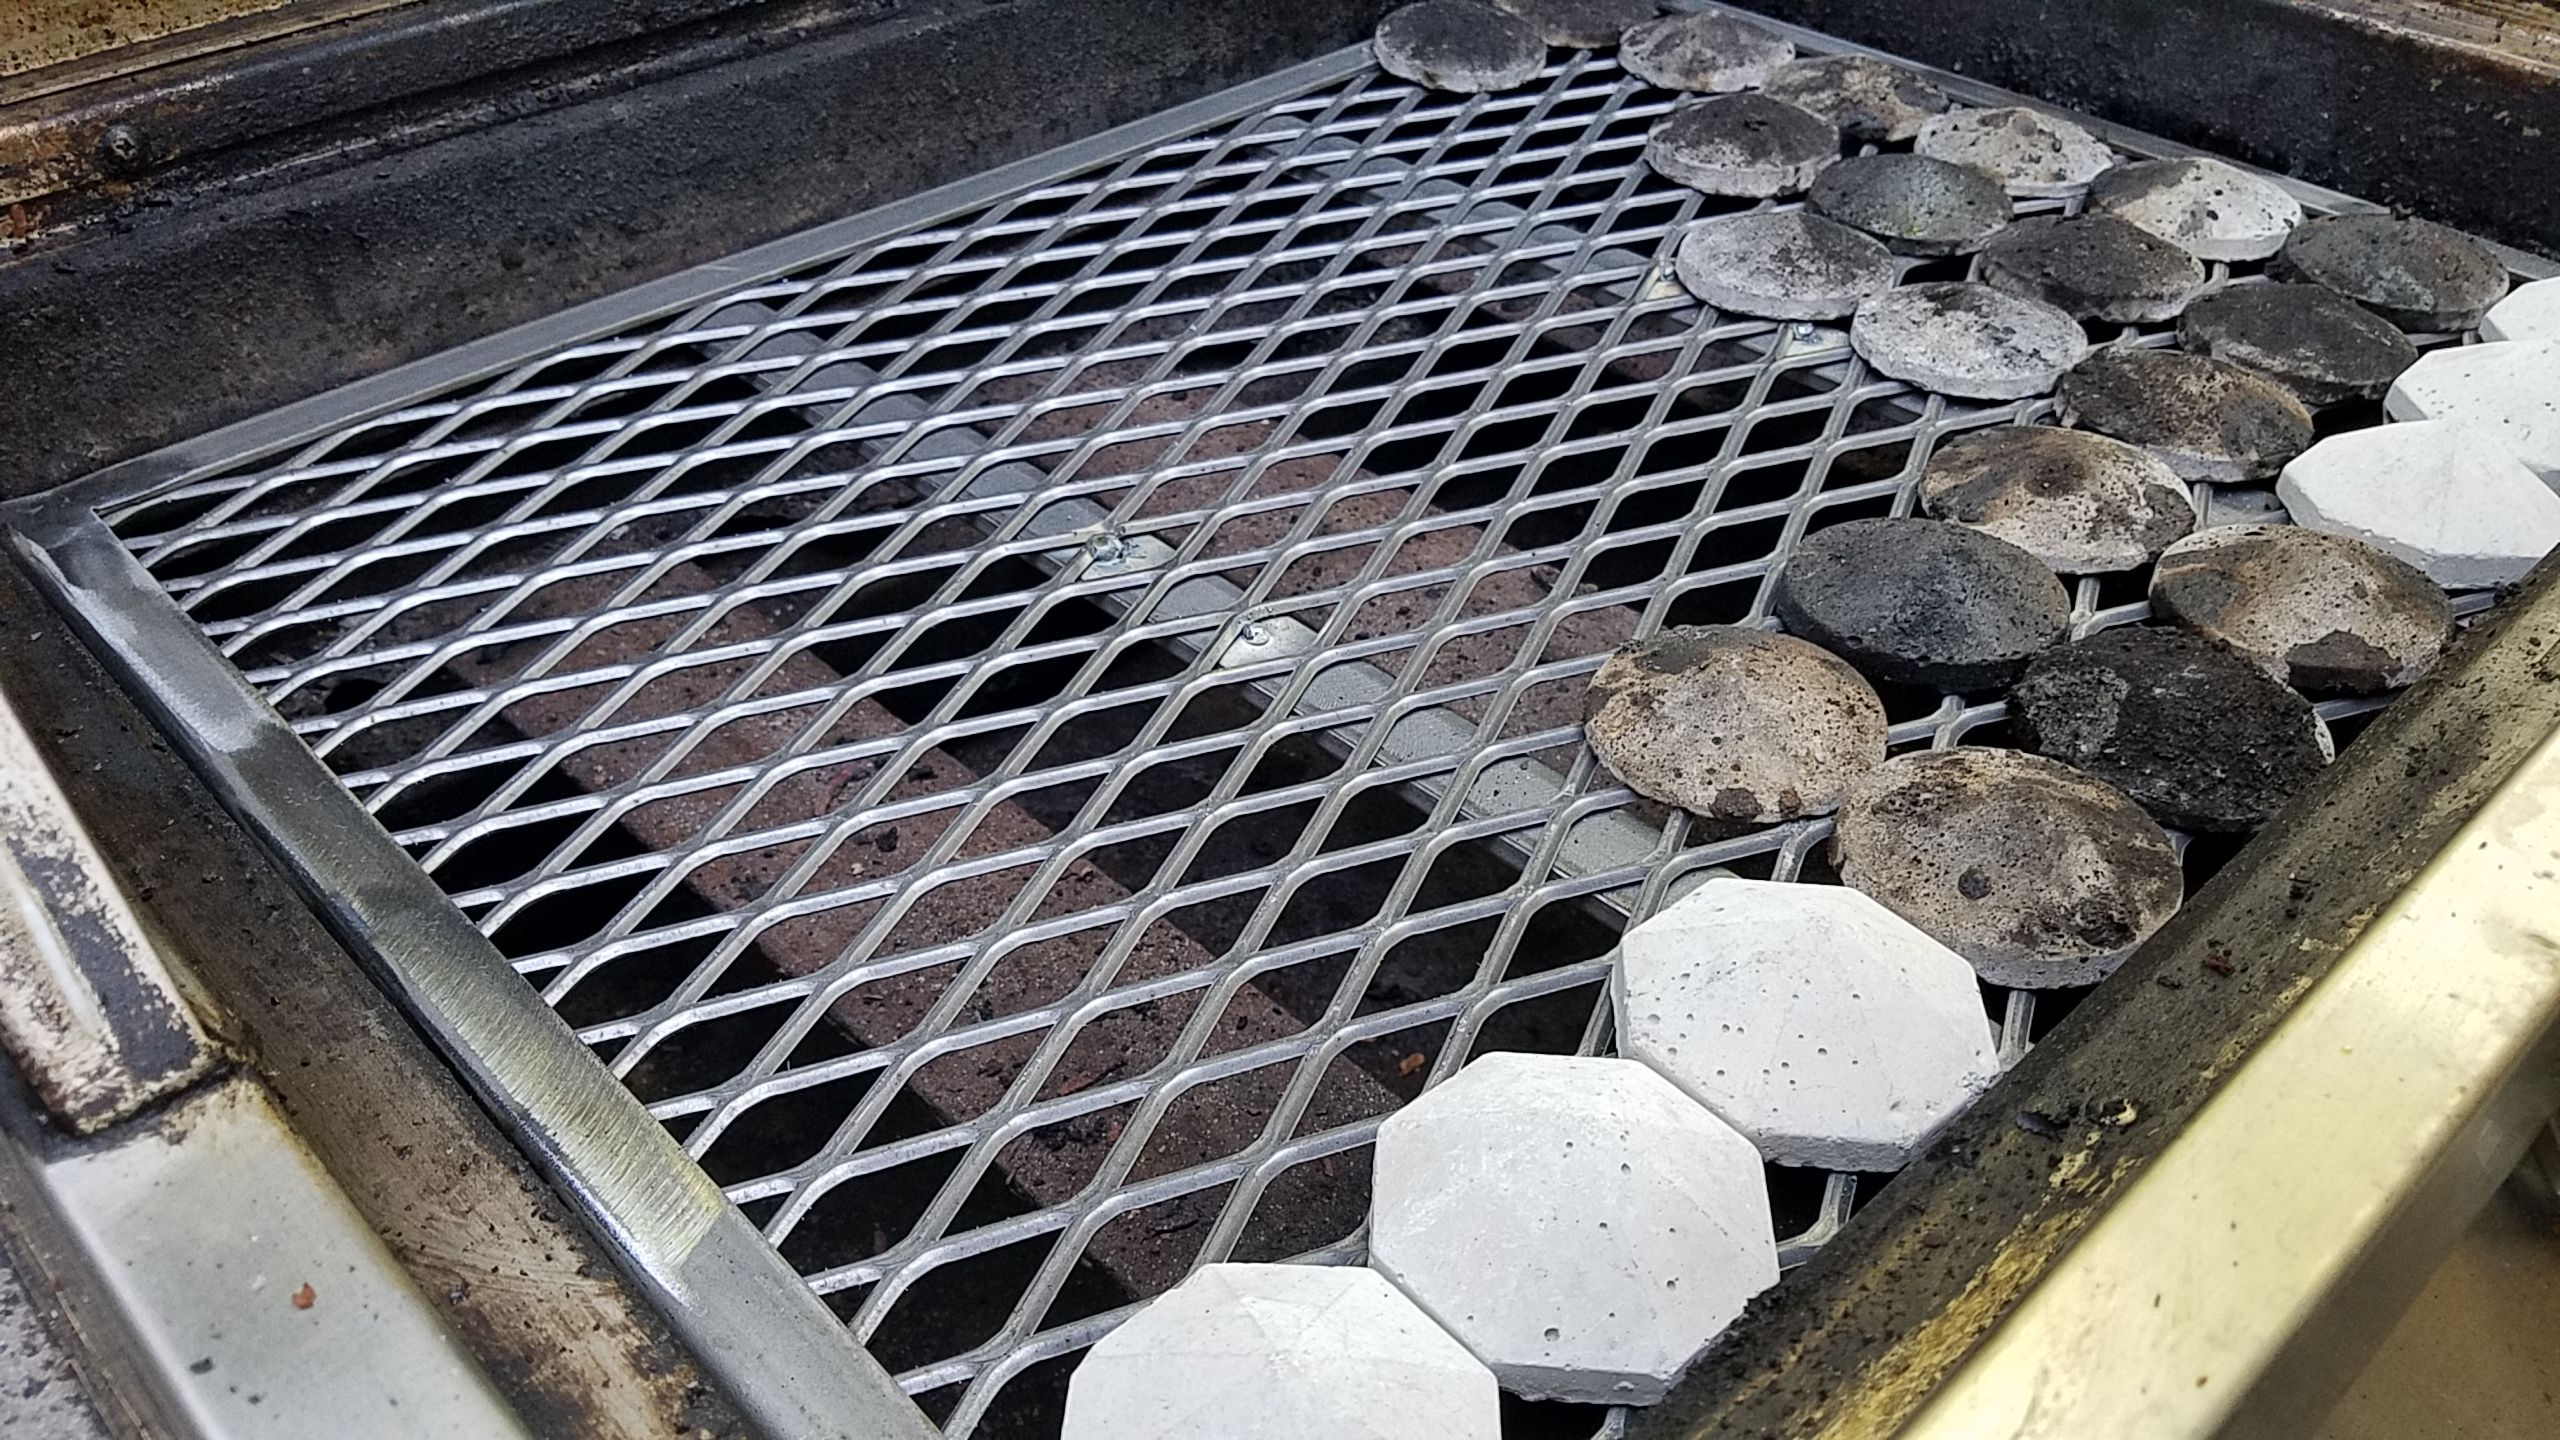 How To Add Briquettes To A Gas Grill